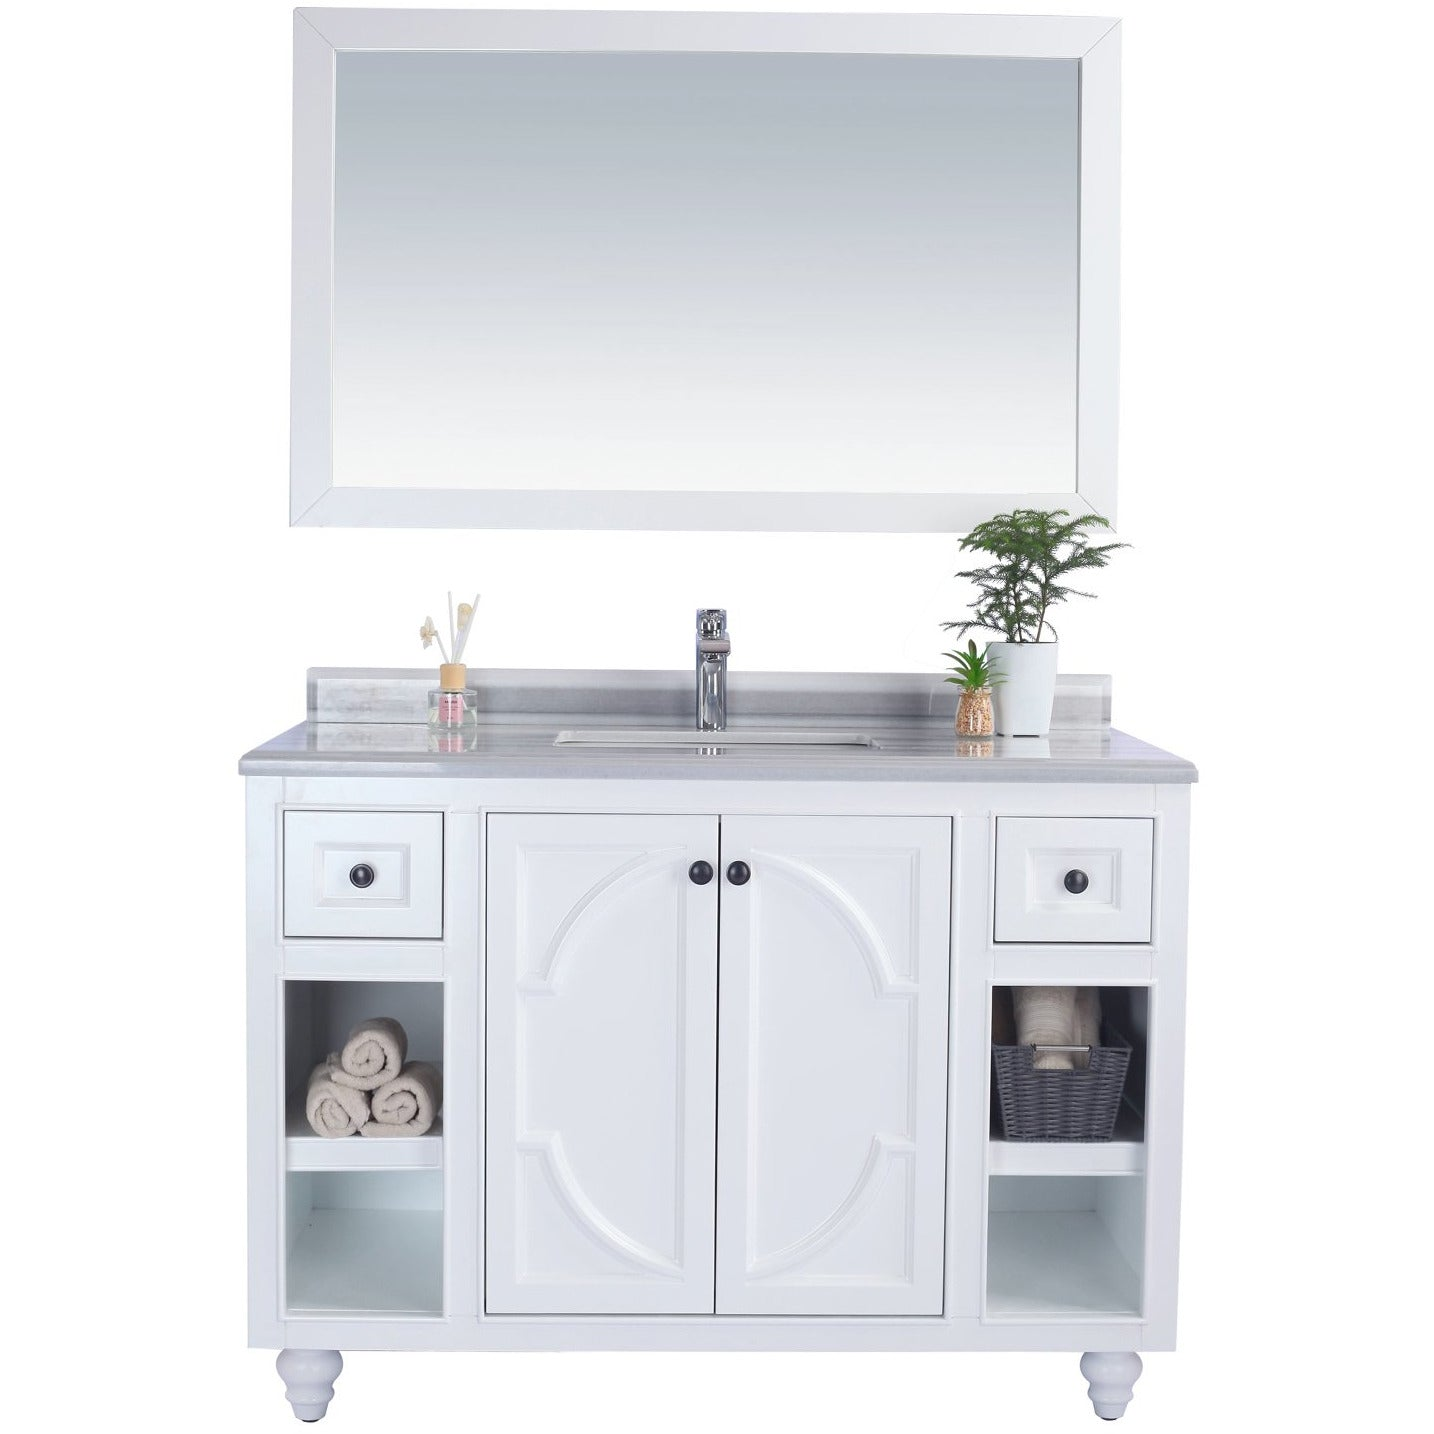 Odyssey - 48 - White Vanity and White Stripes Counter by Laviva